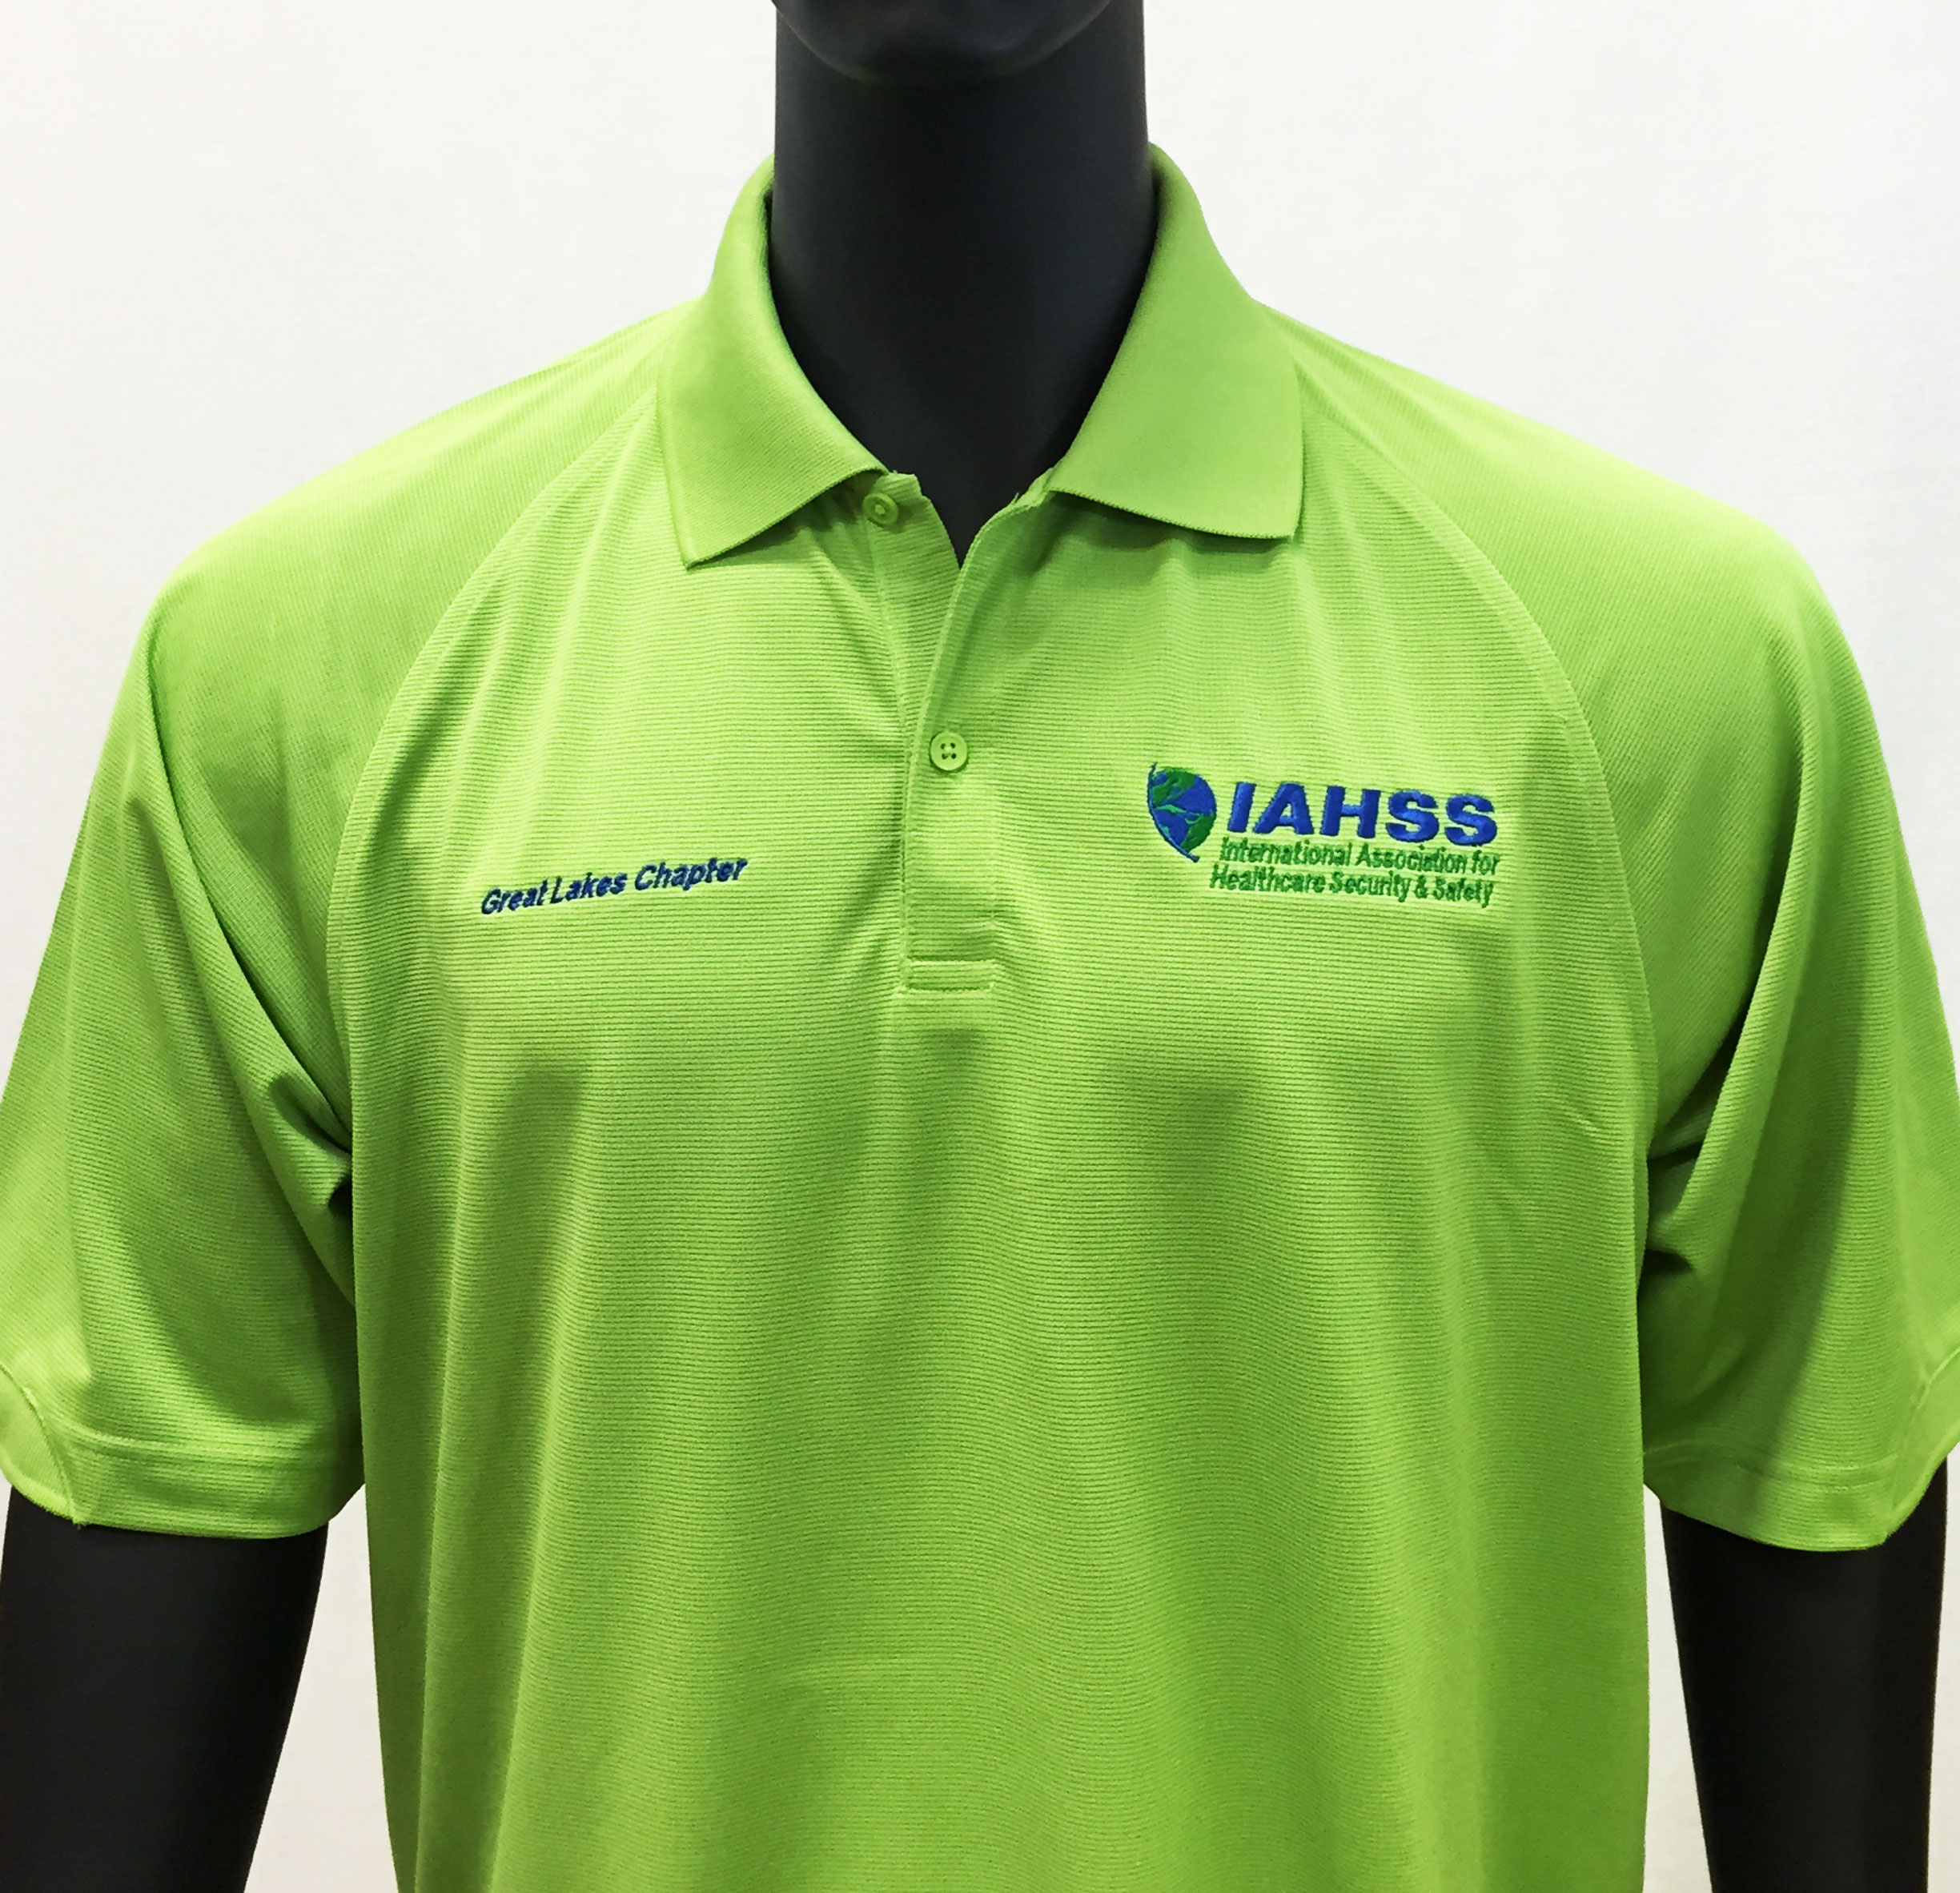 CPASL525 Ladies Port Authority Dry Zone Ottoman Sport Shirt, Green Oasis with IAHSS Great Lakes Chapter Embroidery, XS-4X